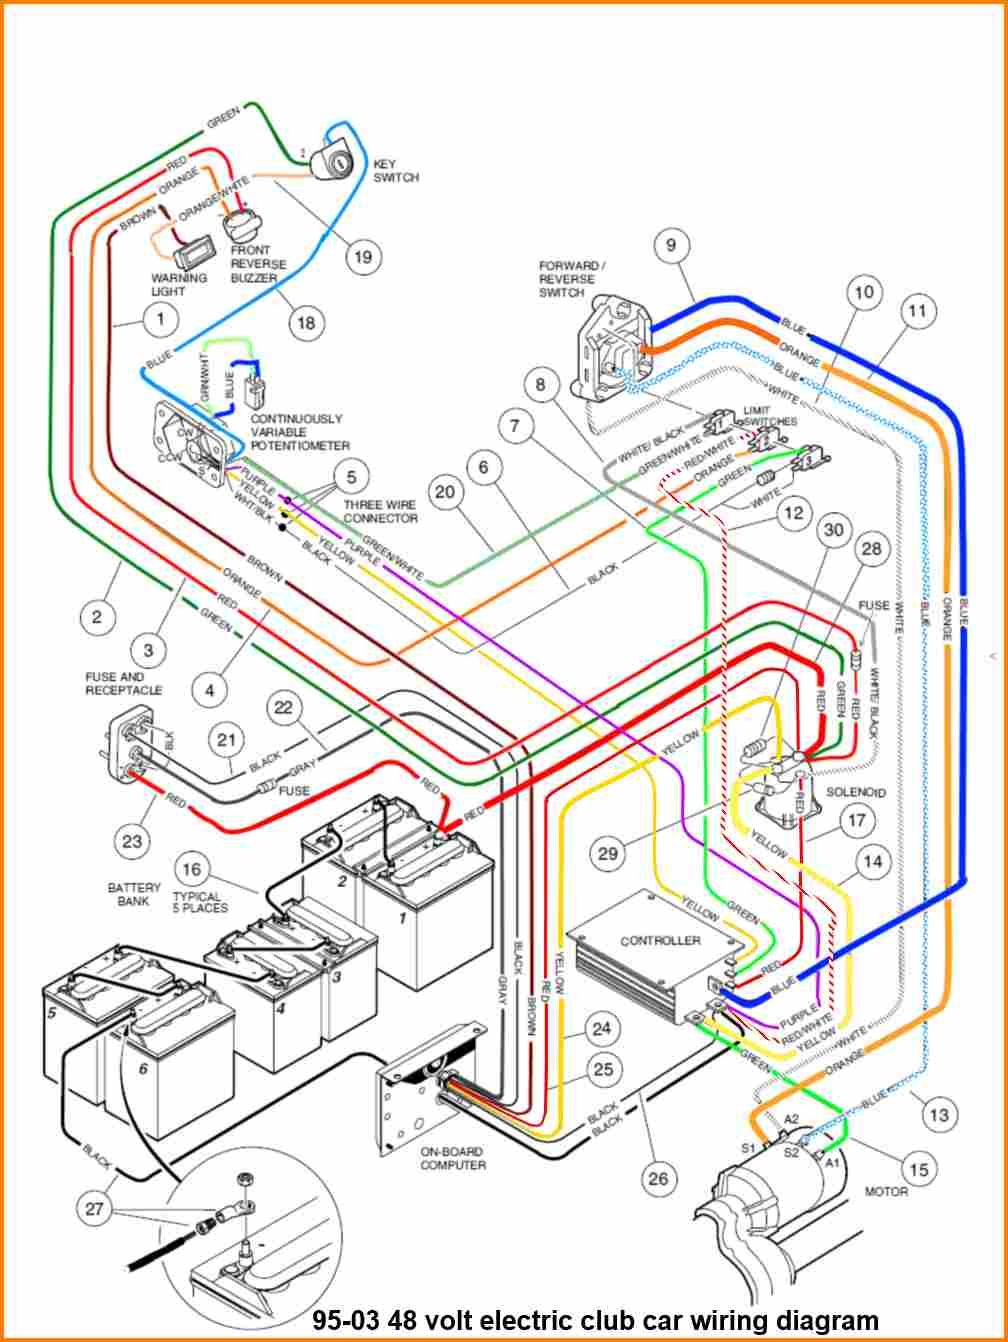 36 volt ezgo wiring diagram 2006 - wiring diagram book pace-link-a -  pace-link-a.prolocoisoletremiti.it  prolocoisoletremiti.it